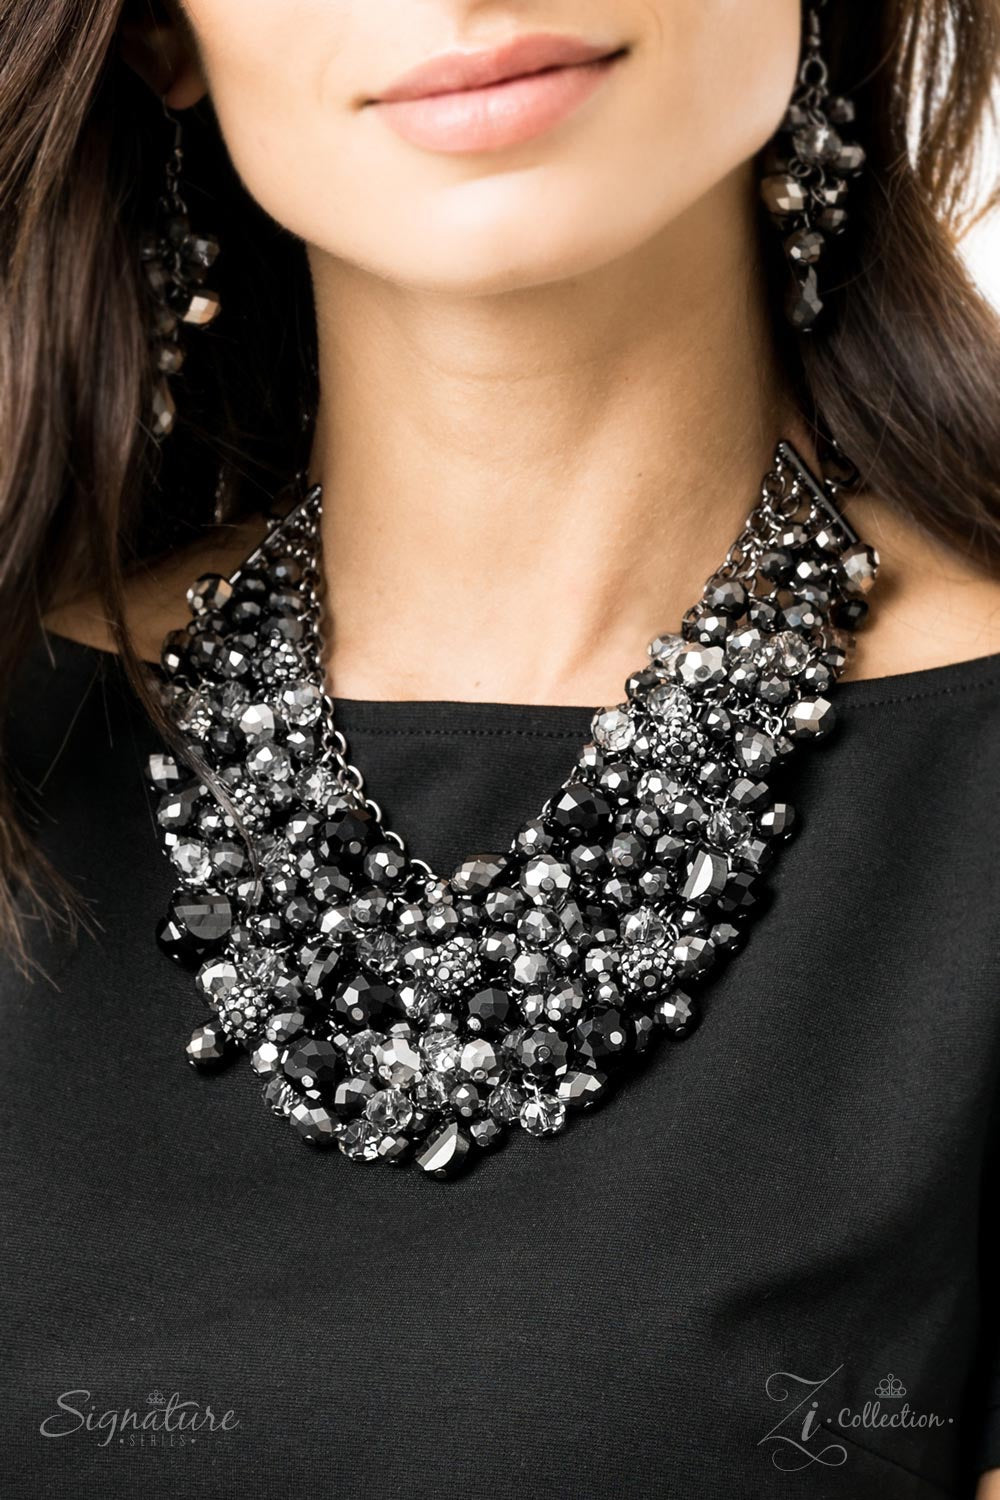 The Taylerlee - Black Rhinestone 2019 Signature Zi Collection Paparazzi Jewelry Necklace paparazzi accessories jewelry Necklaces